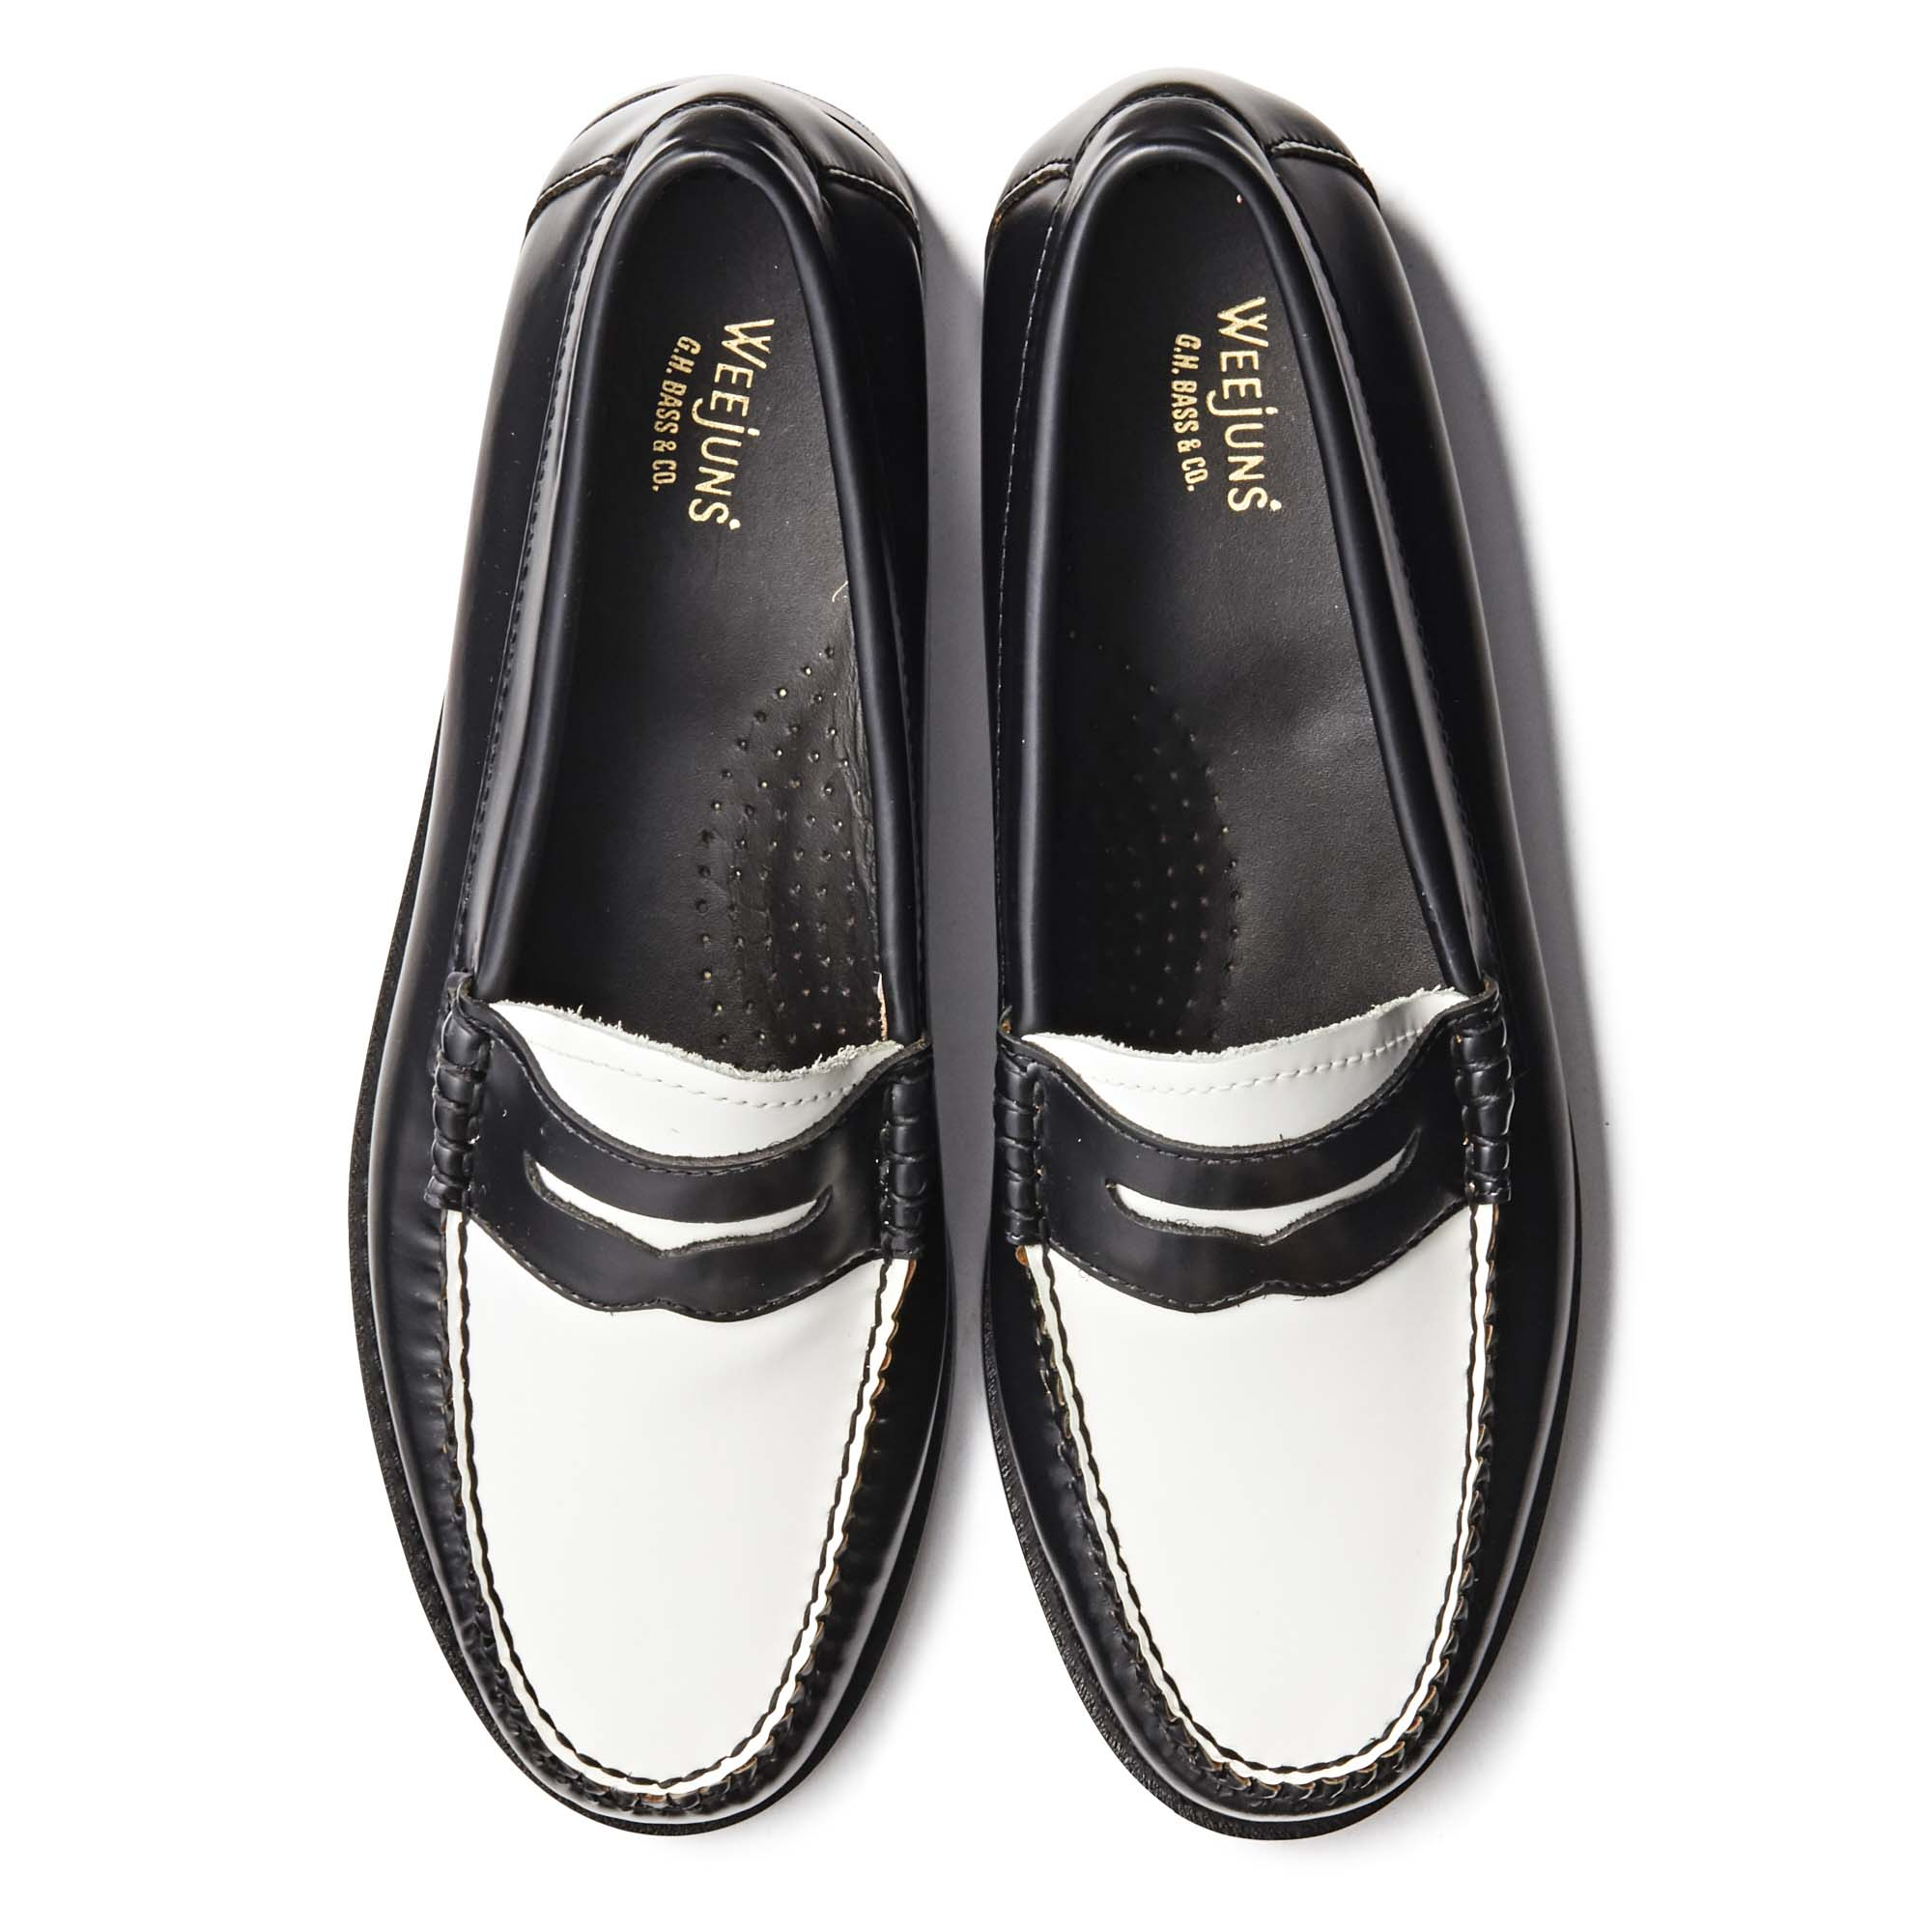 41010 / BLACK & WHITE (LEATHER SOLE)